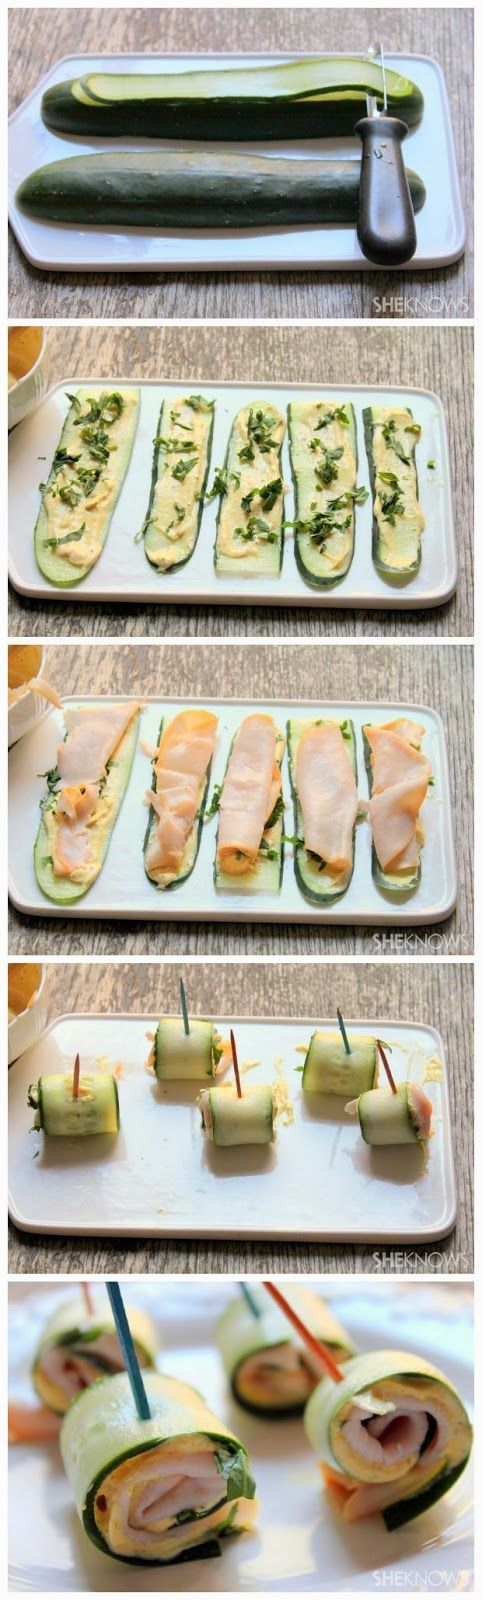 Cucumber roll-ups with hummus and turkey.